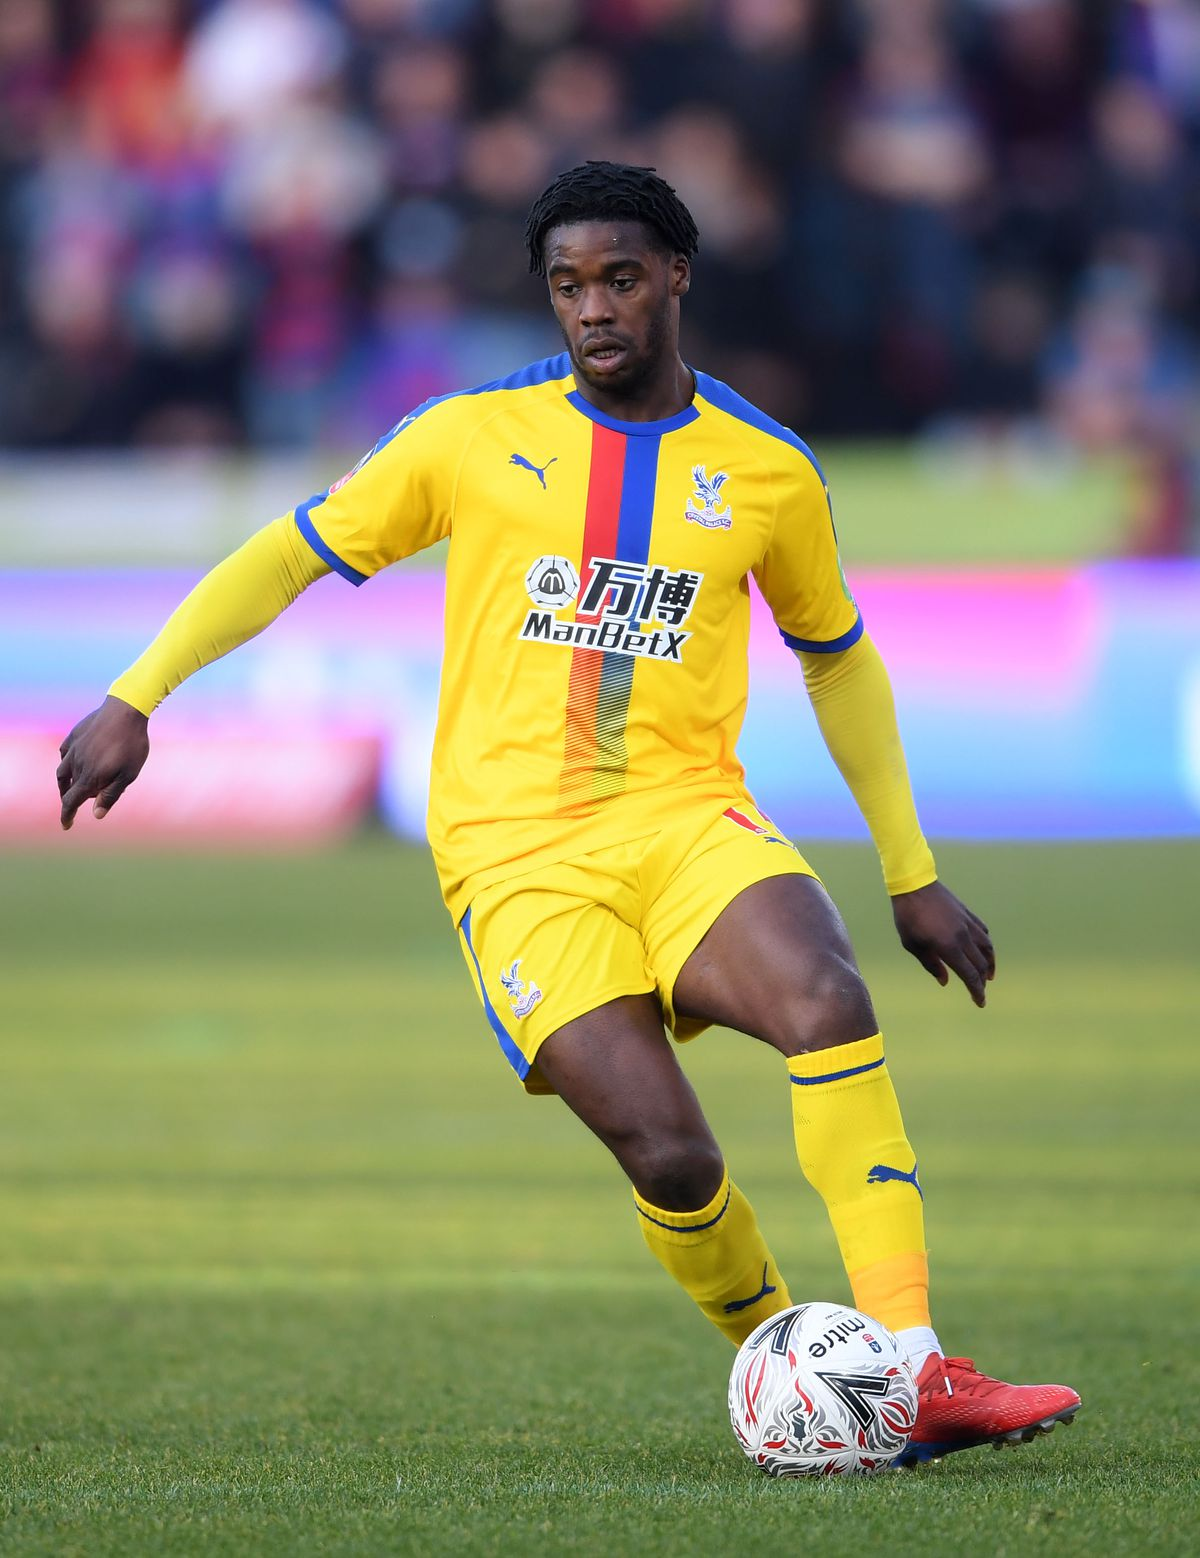 Doncaster Rovers v Crystal Palace - FA Cup Fifth Round